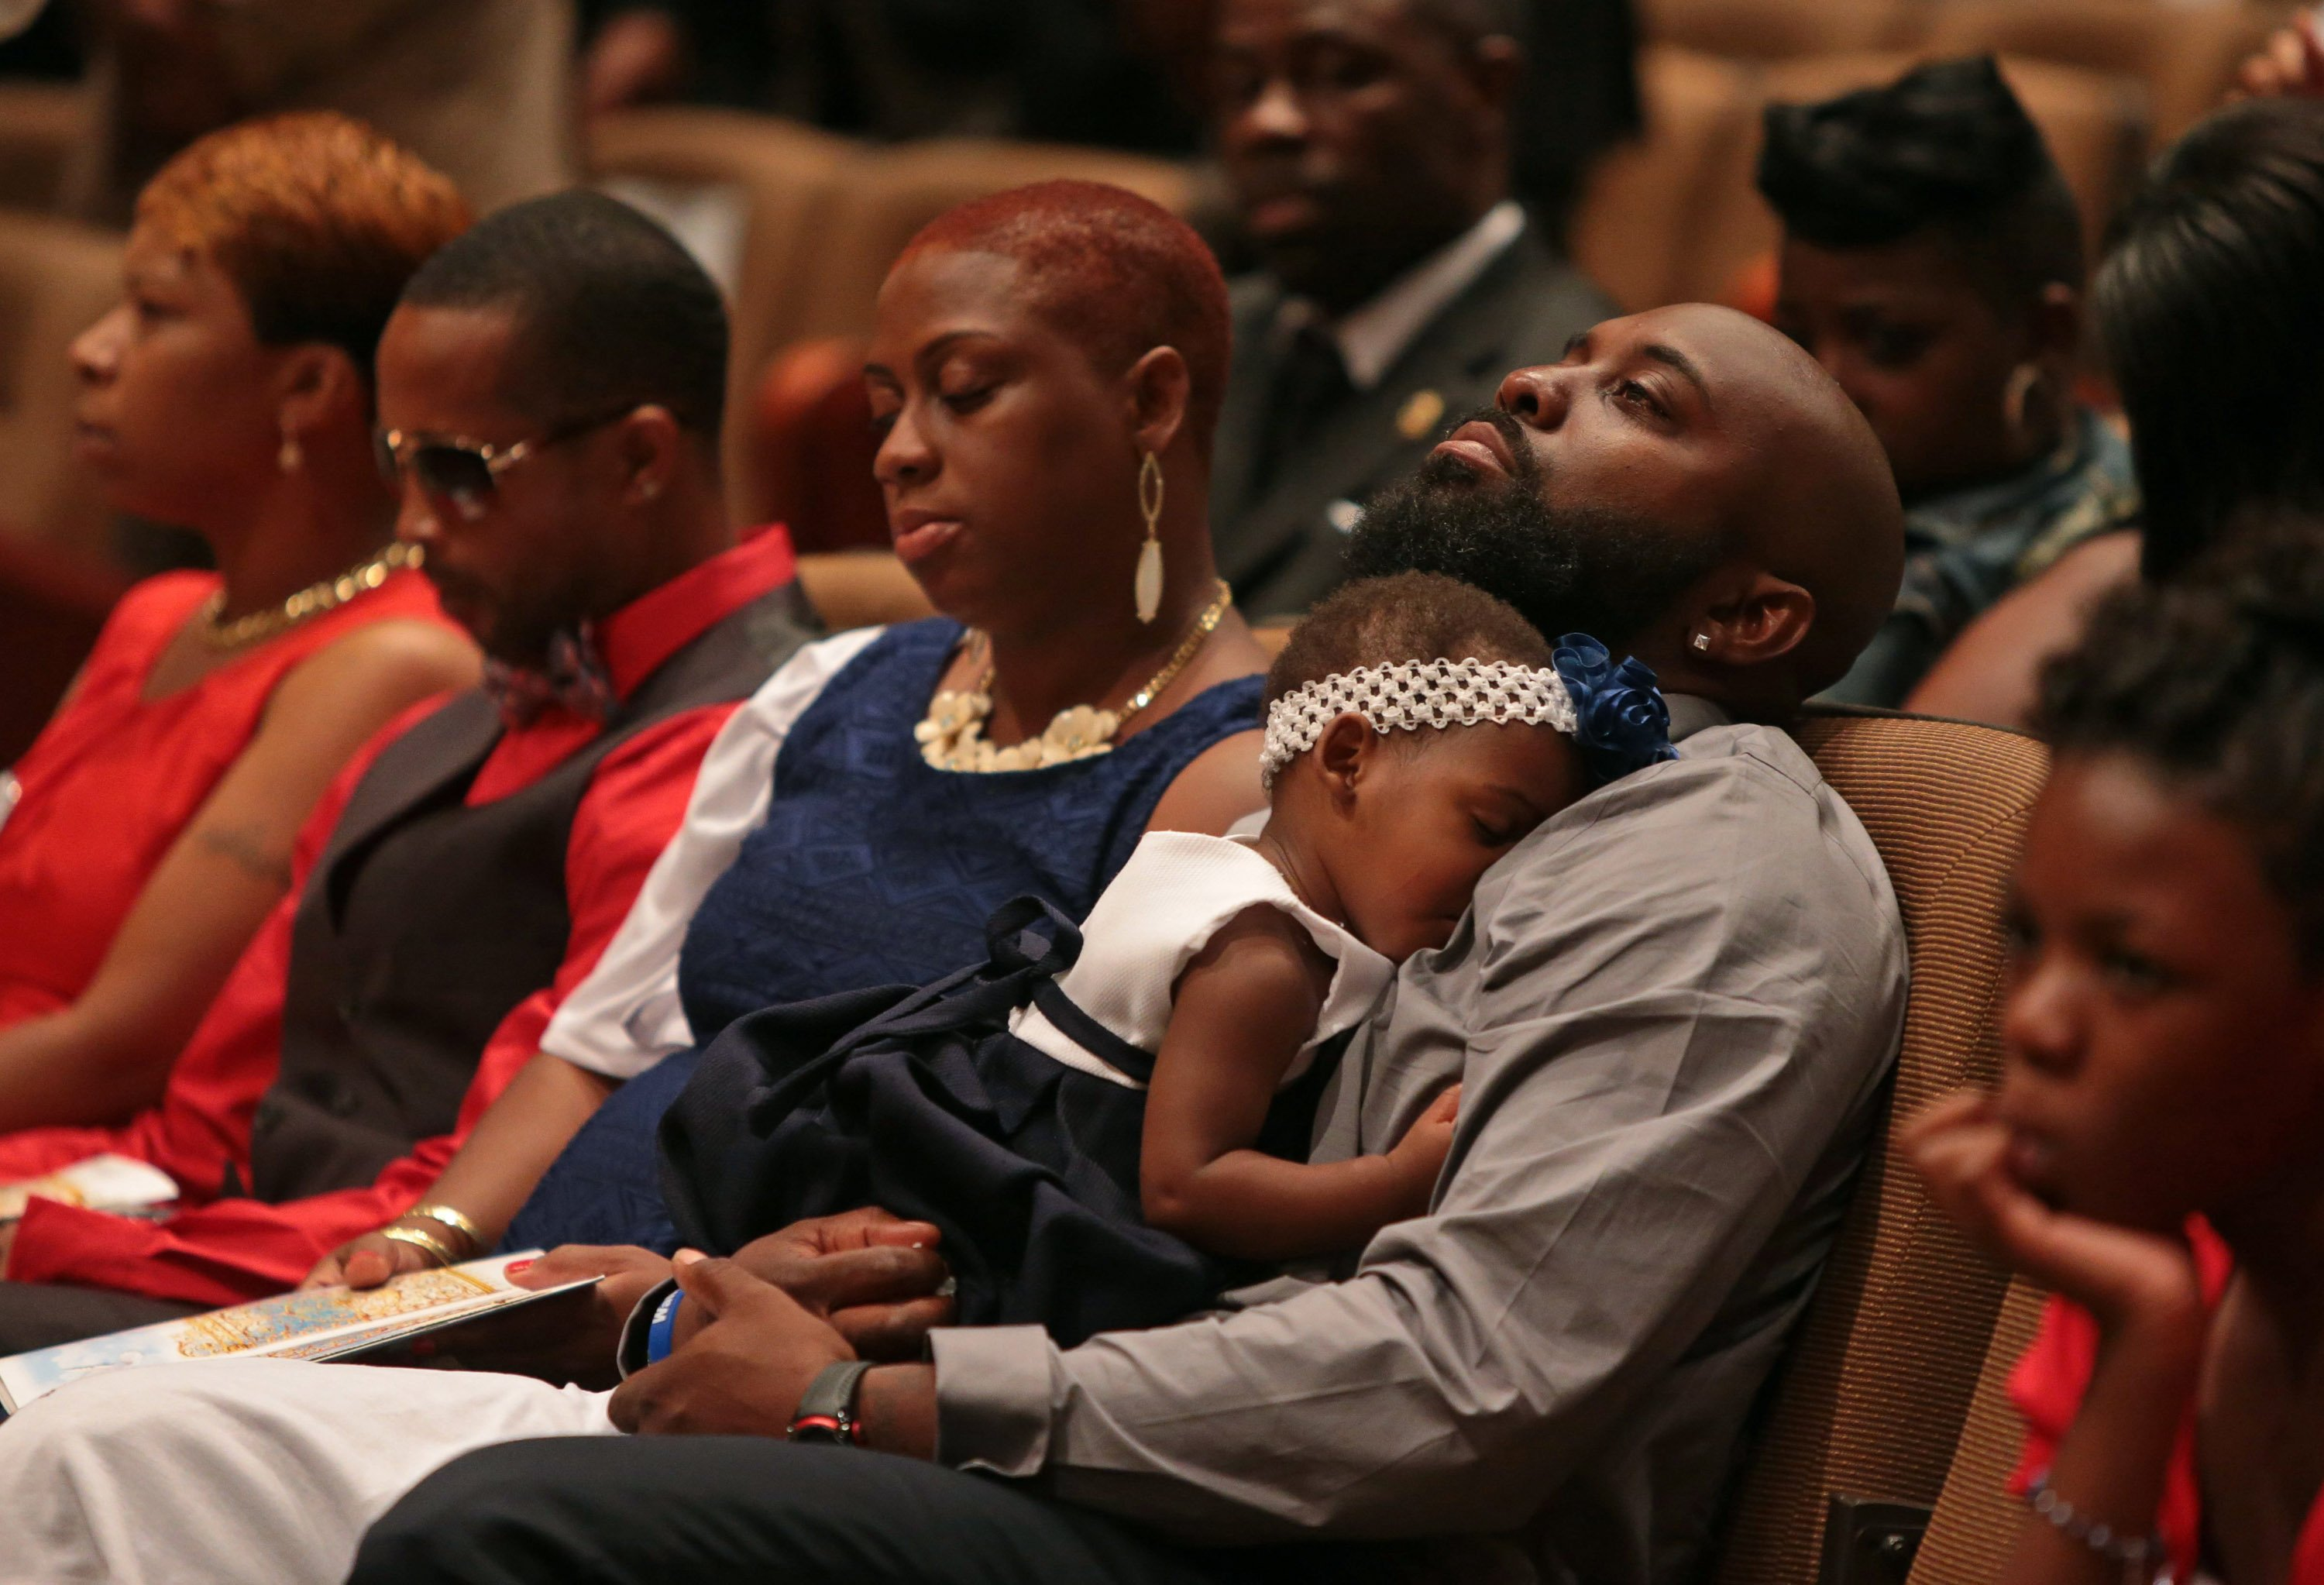 Michael Brown Sr. sits with a child on his lap during the funeral services for his son Michael Brown inside the Friendly Temple Missionary Baptist Church in St. Louis on Aug. 25, 2014.